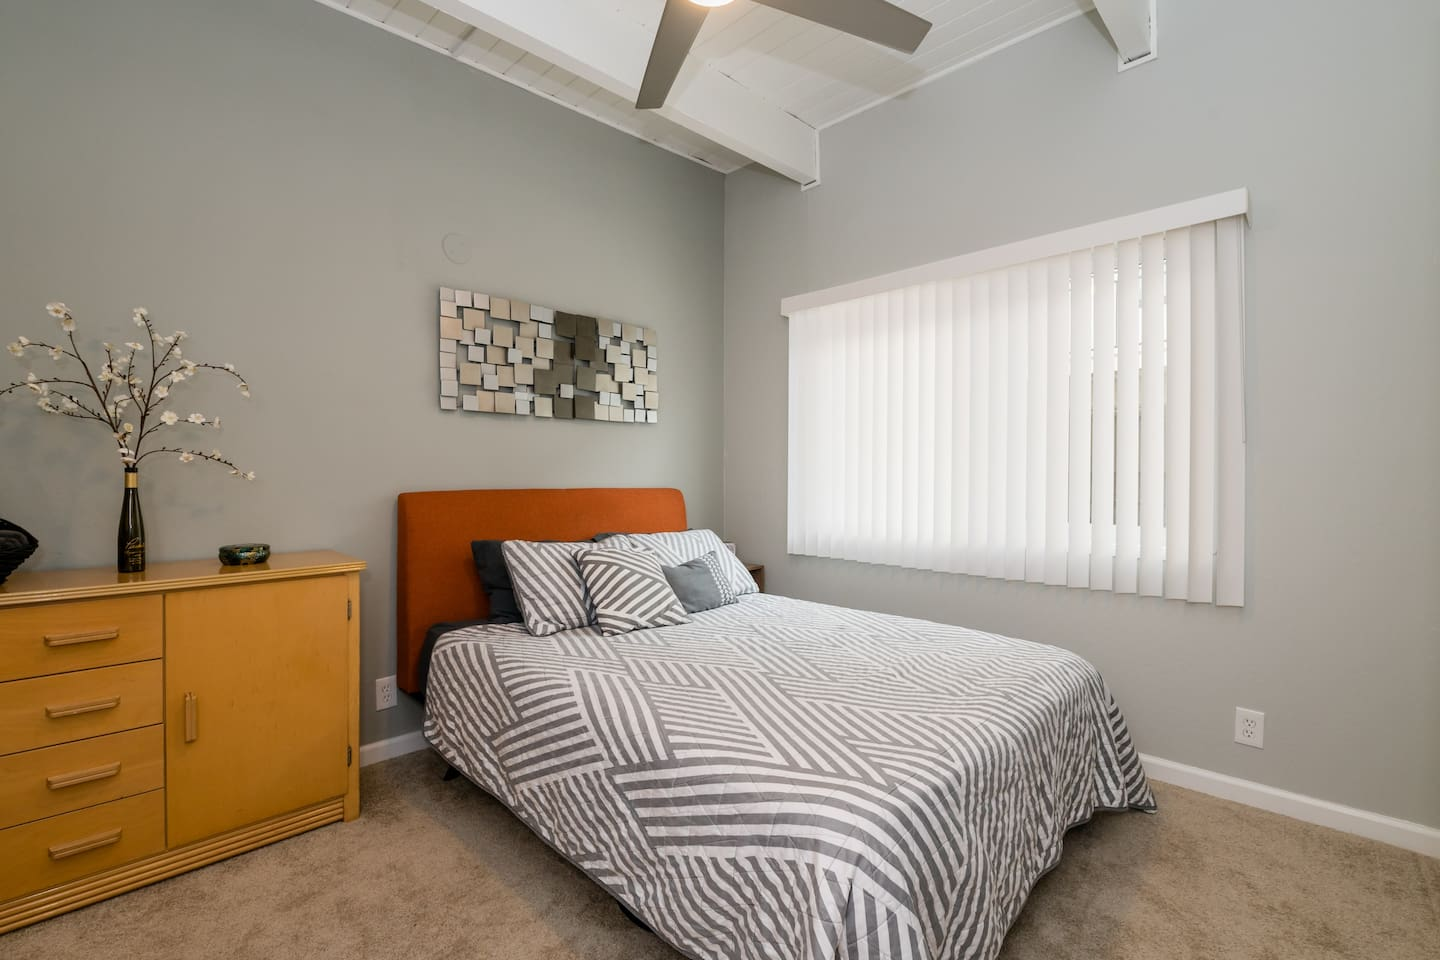 Spacious One Bedroom With Attached Bath and Walk-In Closet